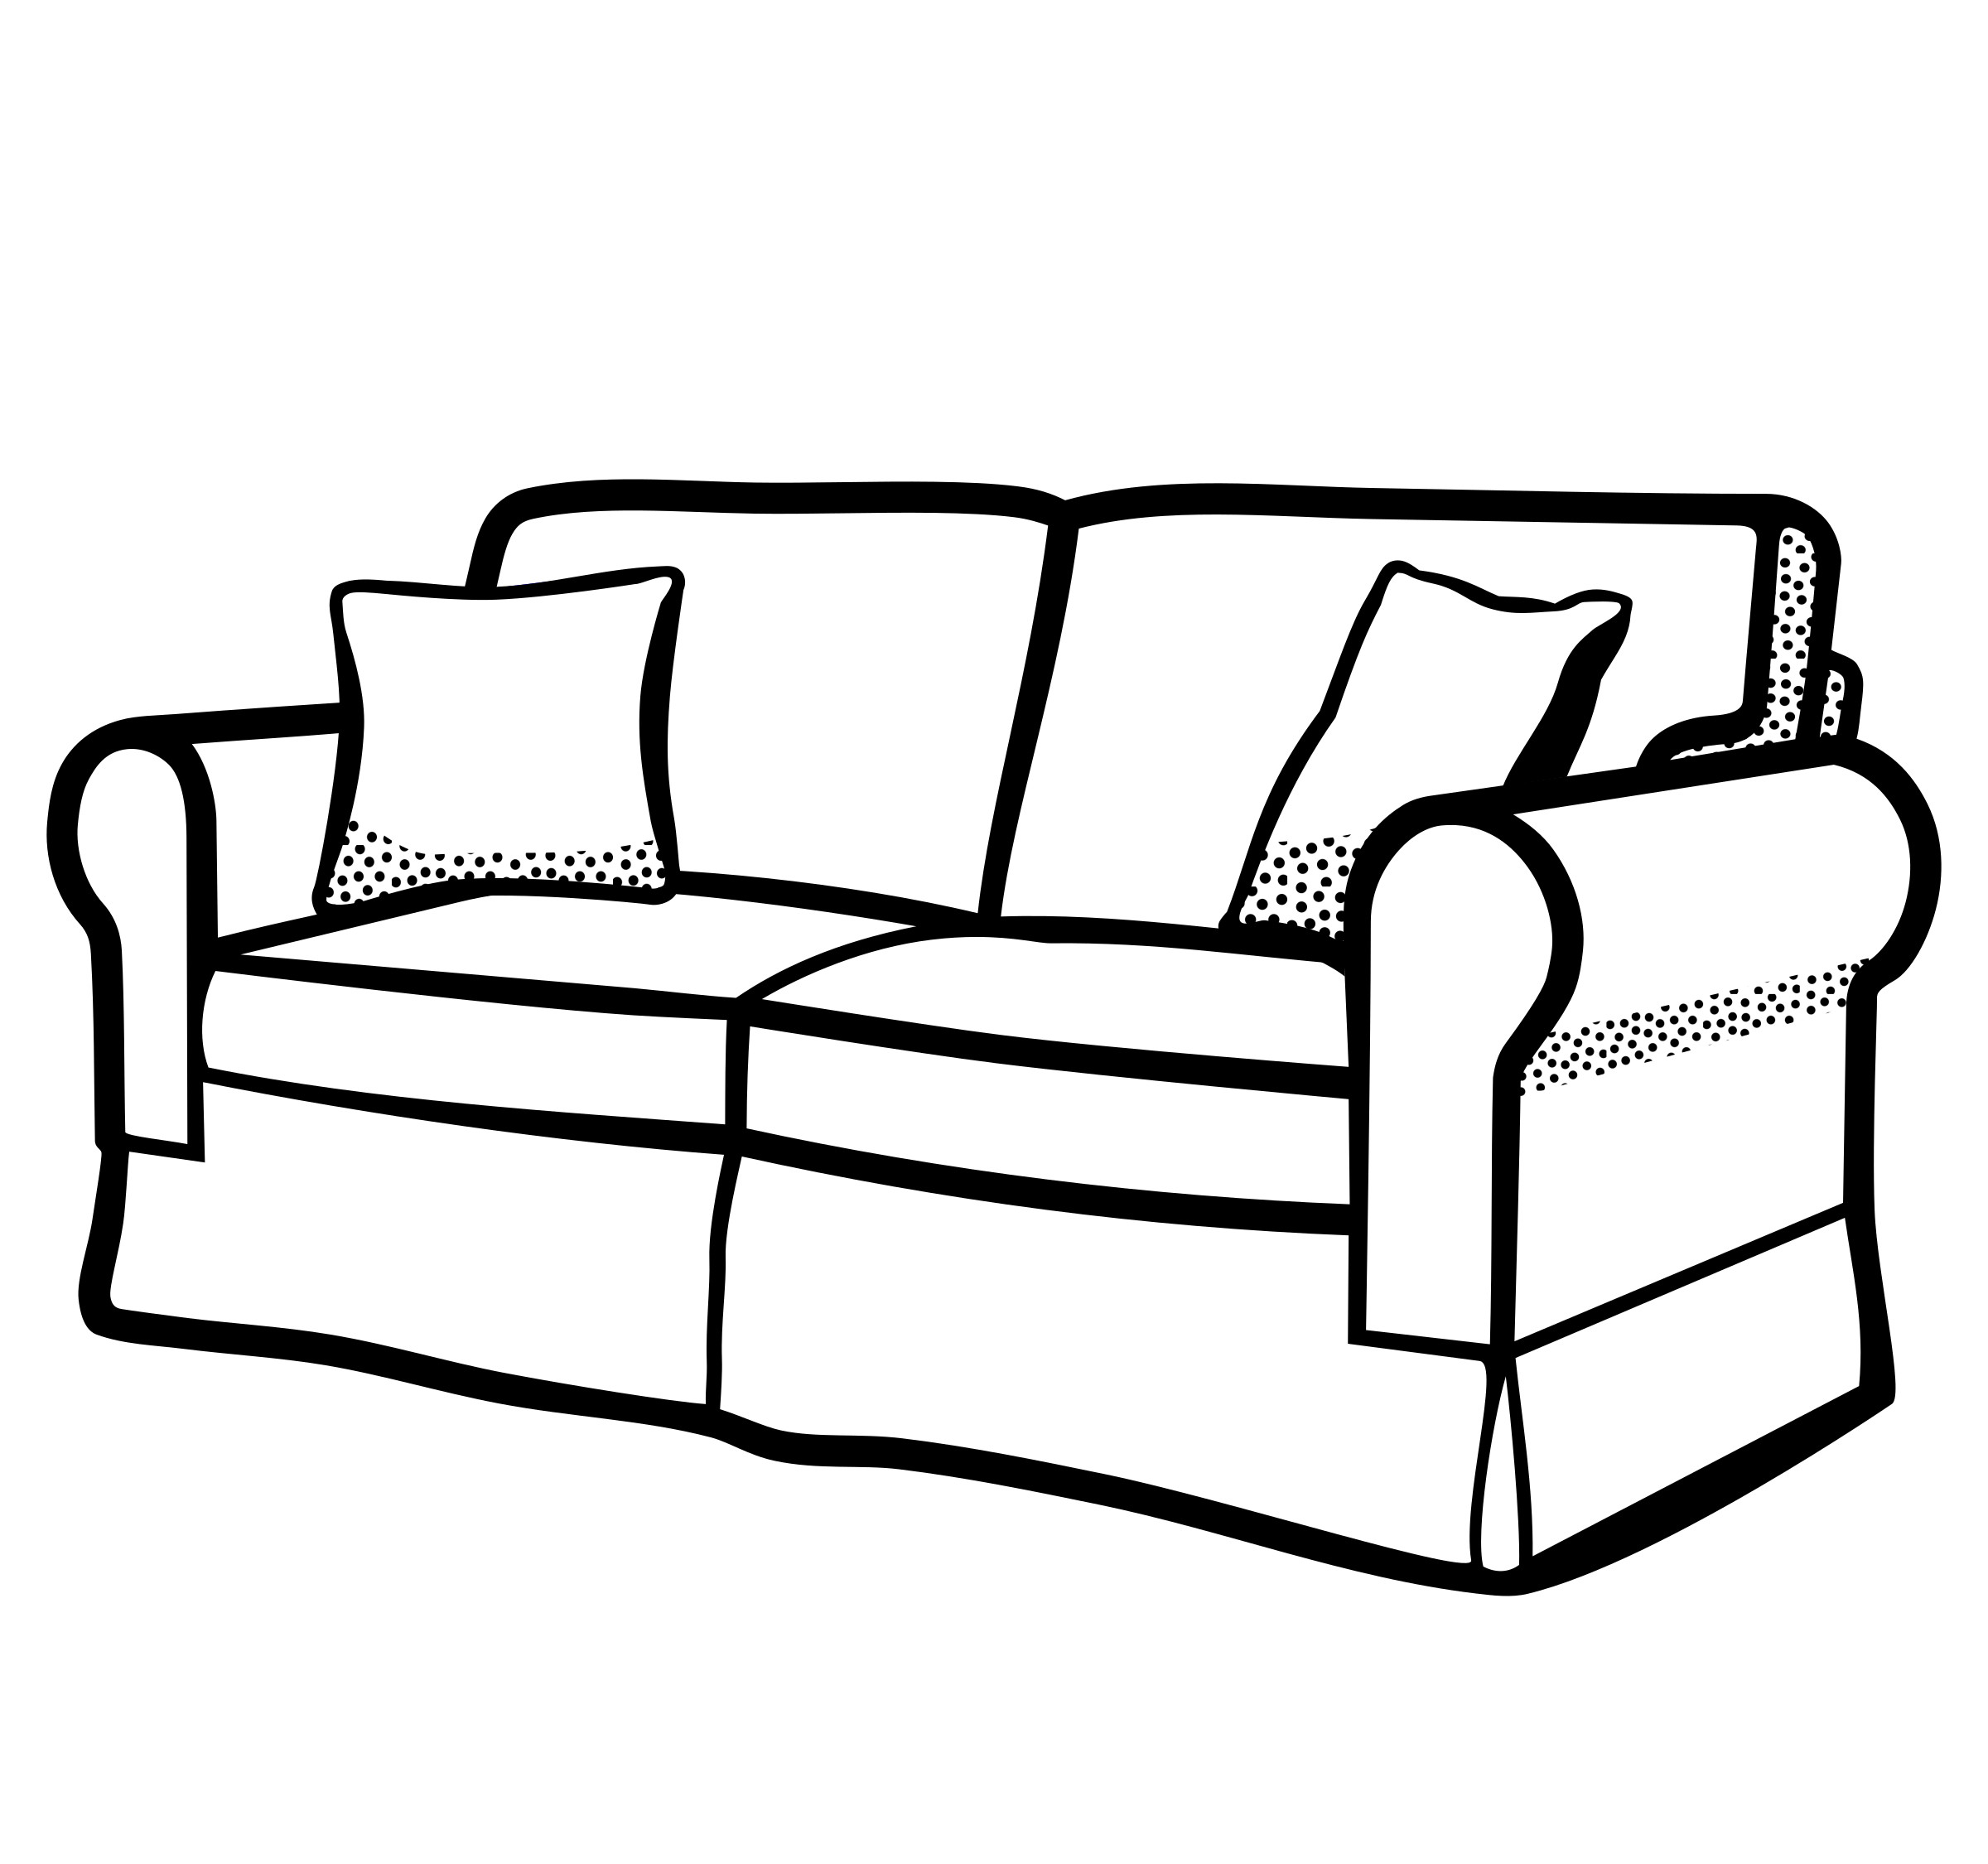 Sofa Set Vector Free Download Free Sofa Cliparts Download Free Clip Art Free Clip Art On